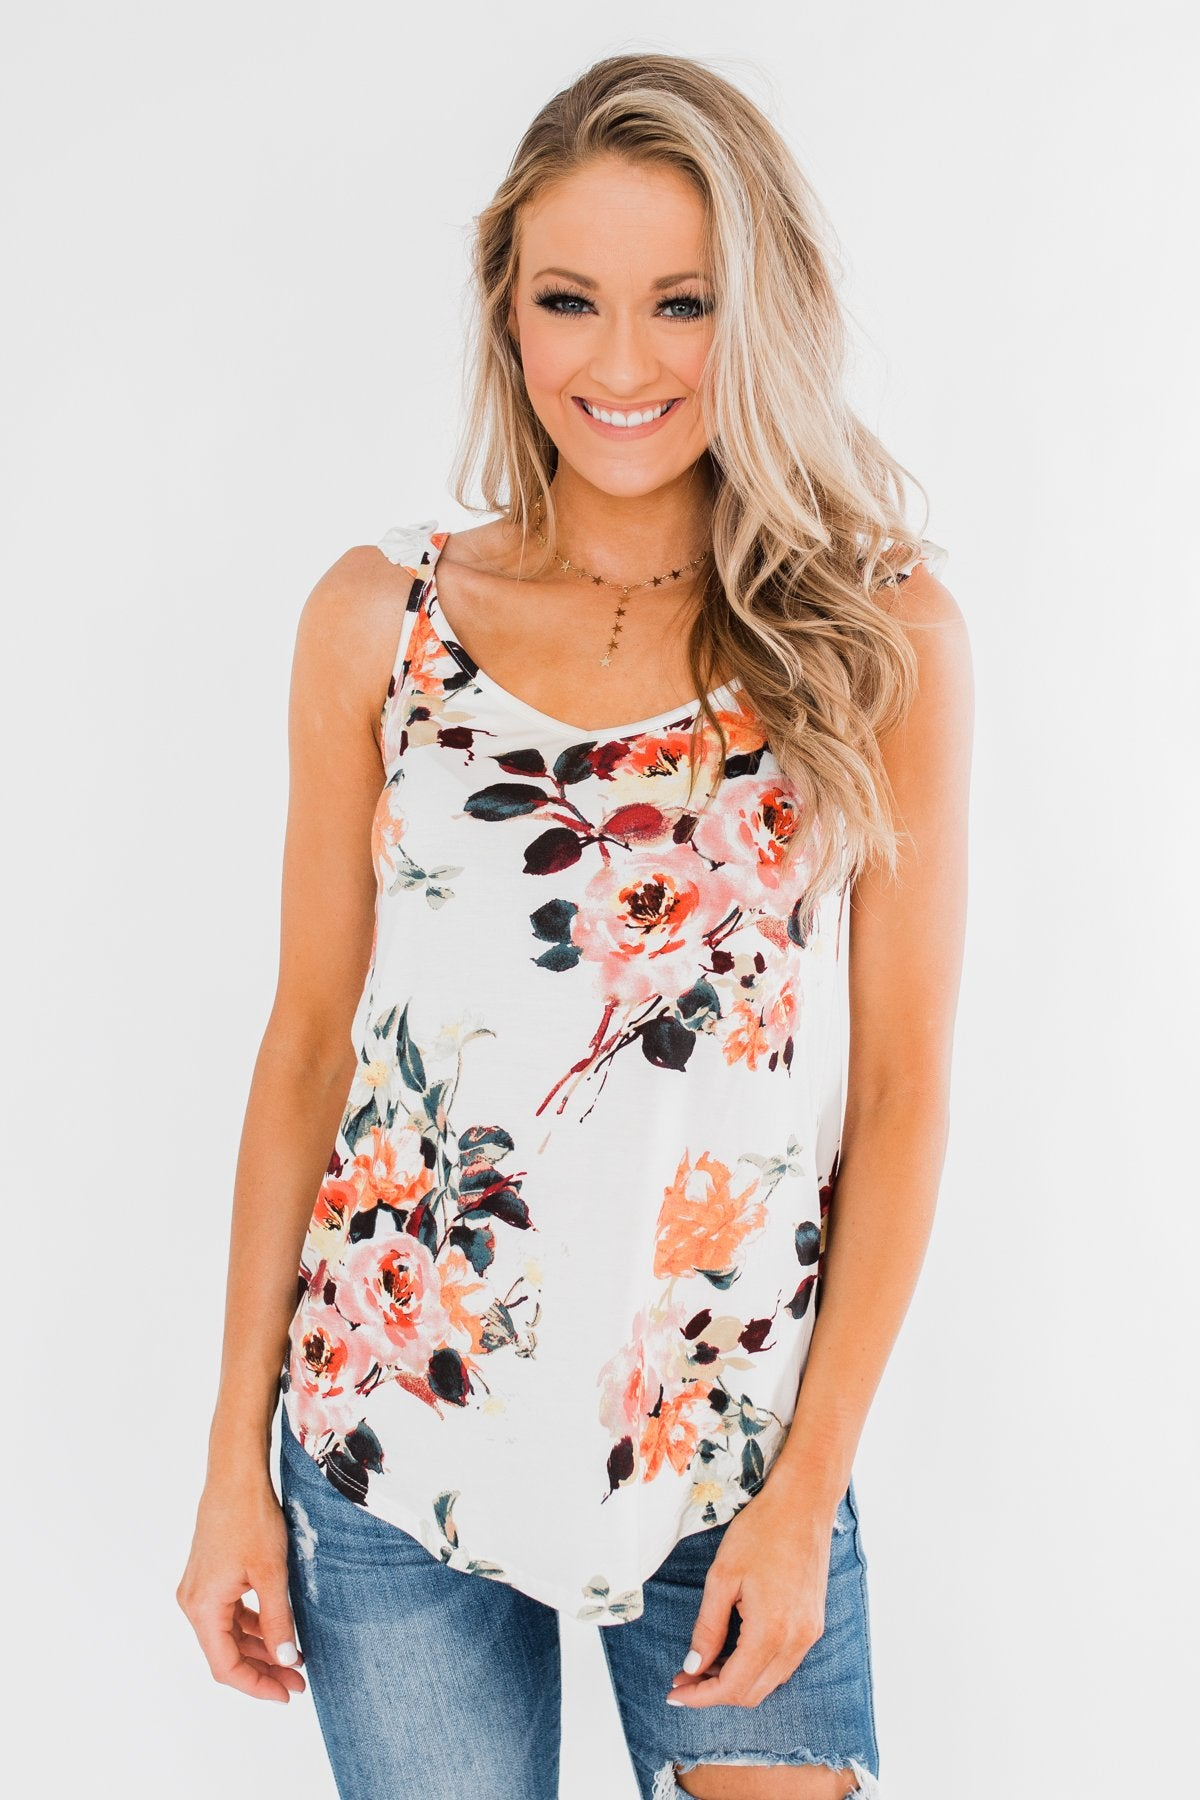 Turn & Smile Floral Tank Top- Ivory